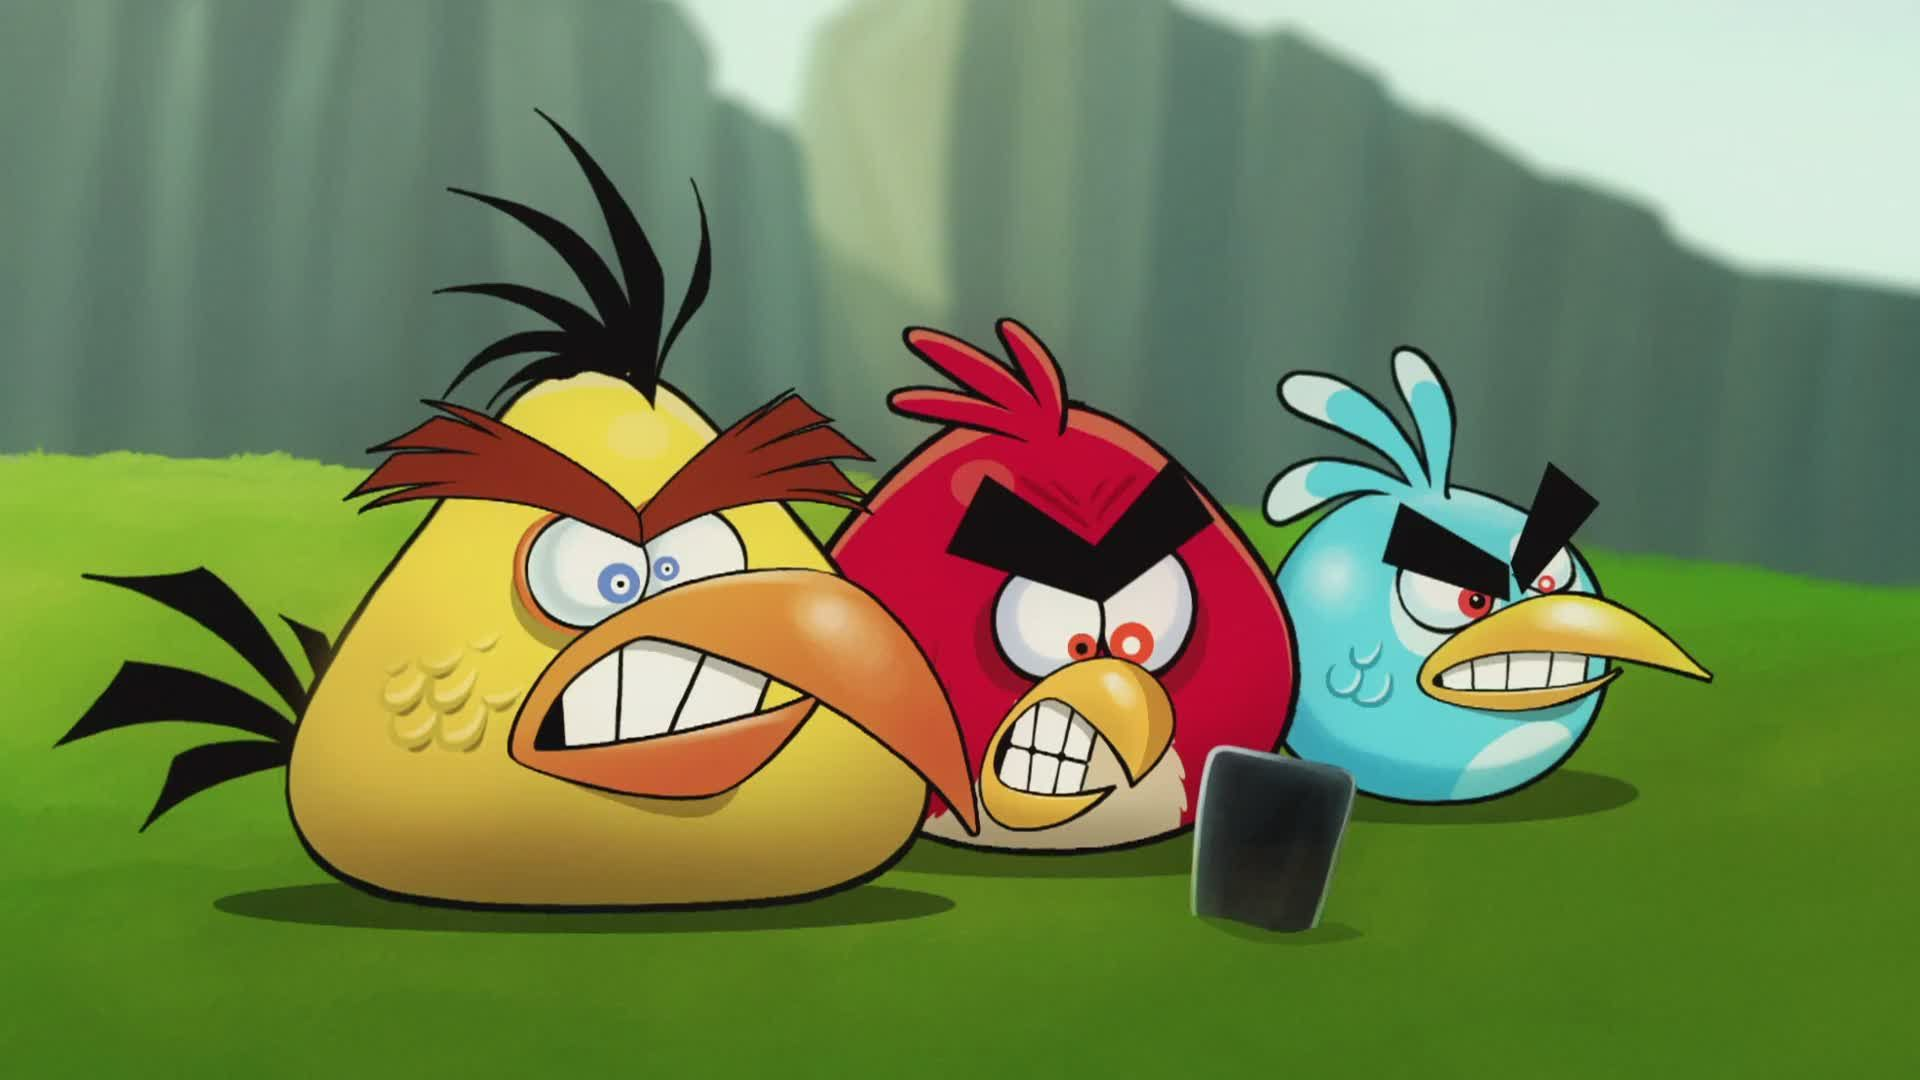 hd wallpapers widescreen 1080p 3d | wallpaper angry birds